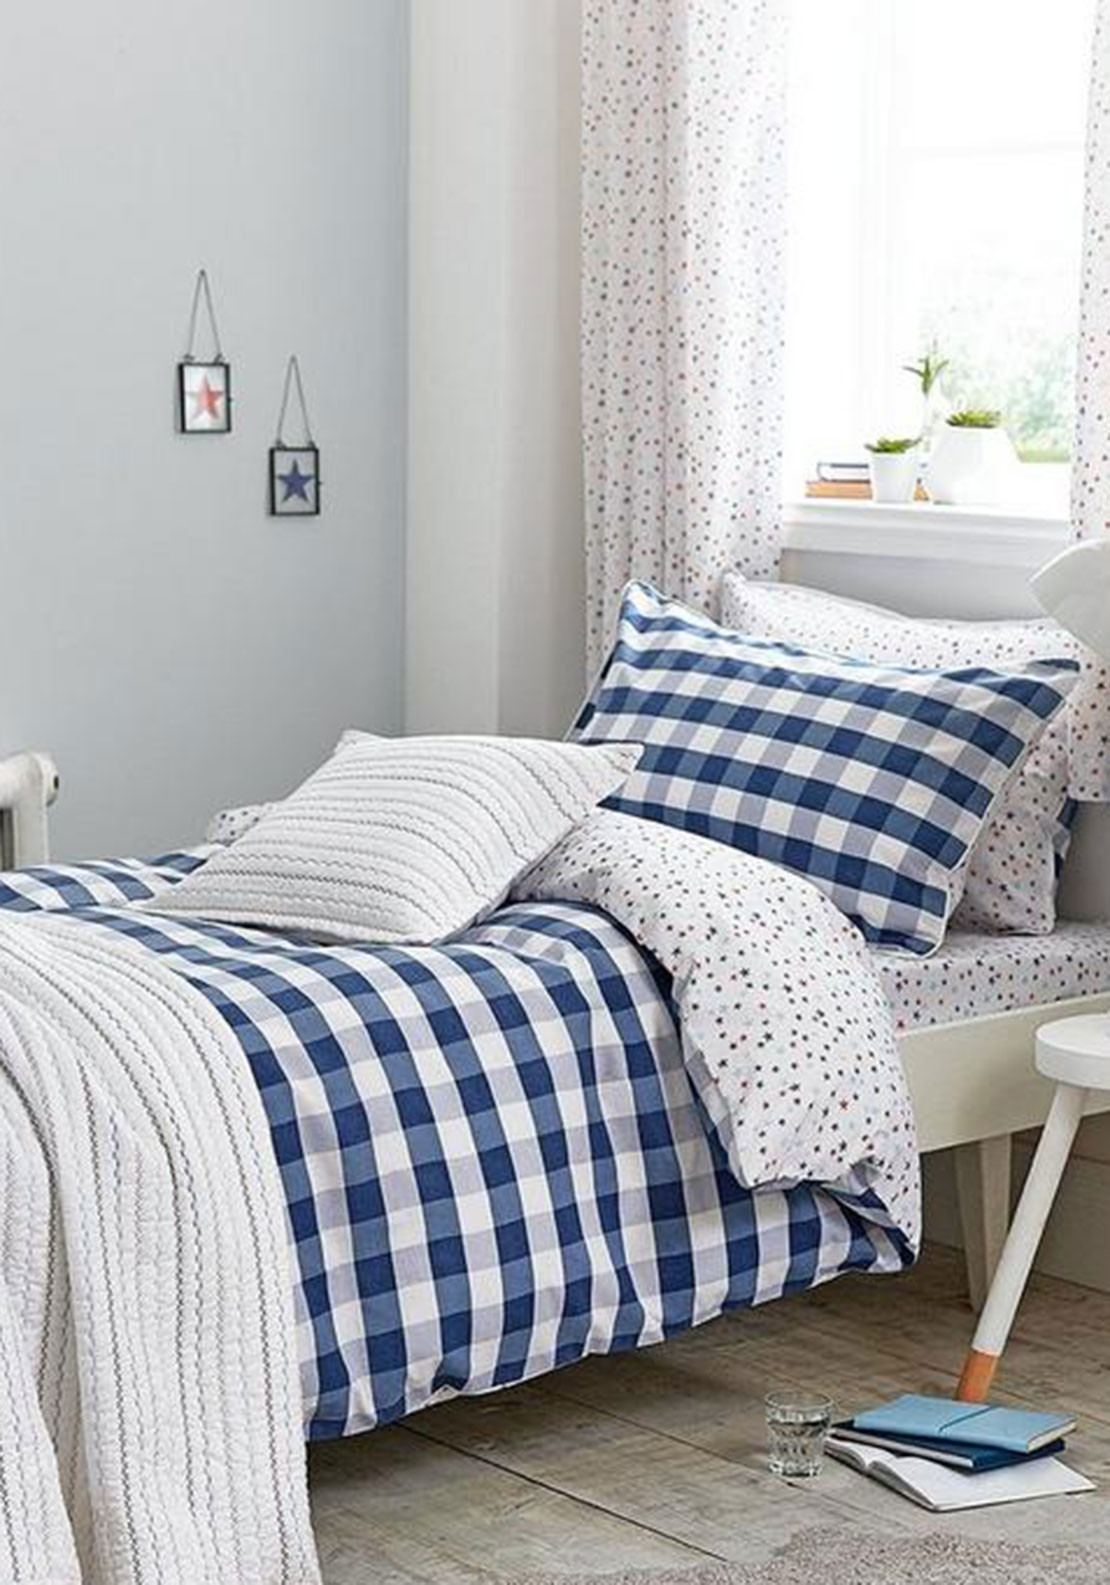 club yellow reviews cover set animals fresh of gingham beautiful duvet read home king impressions george bestduvetcovers and